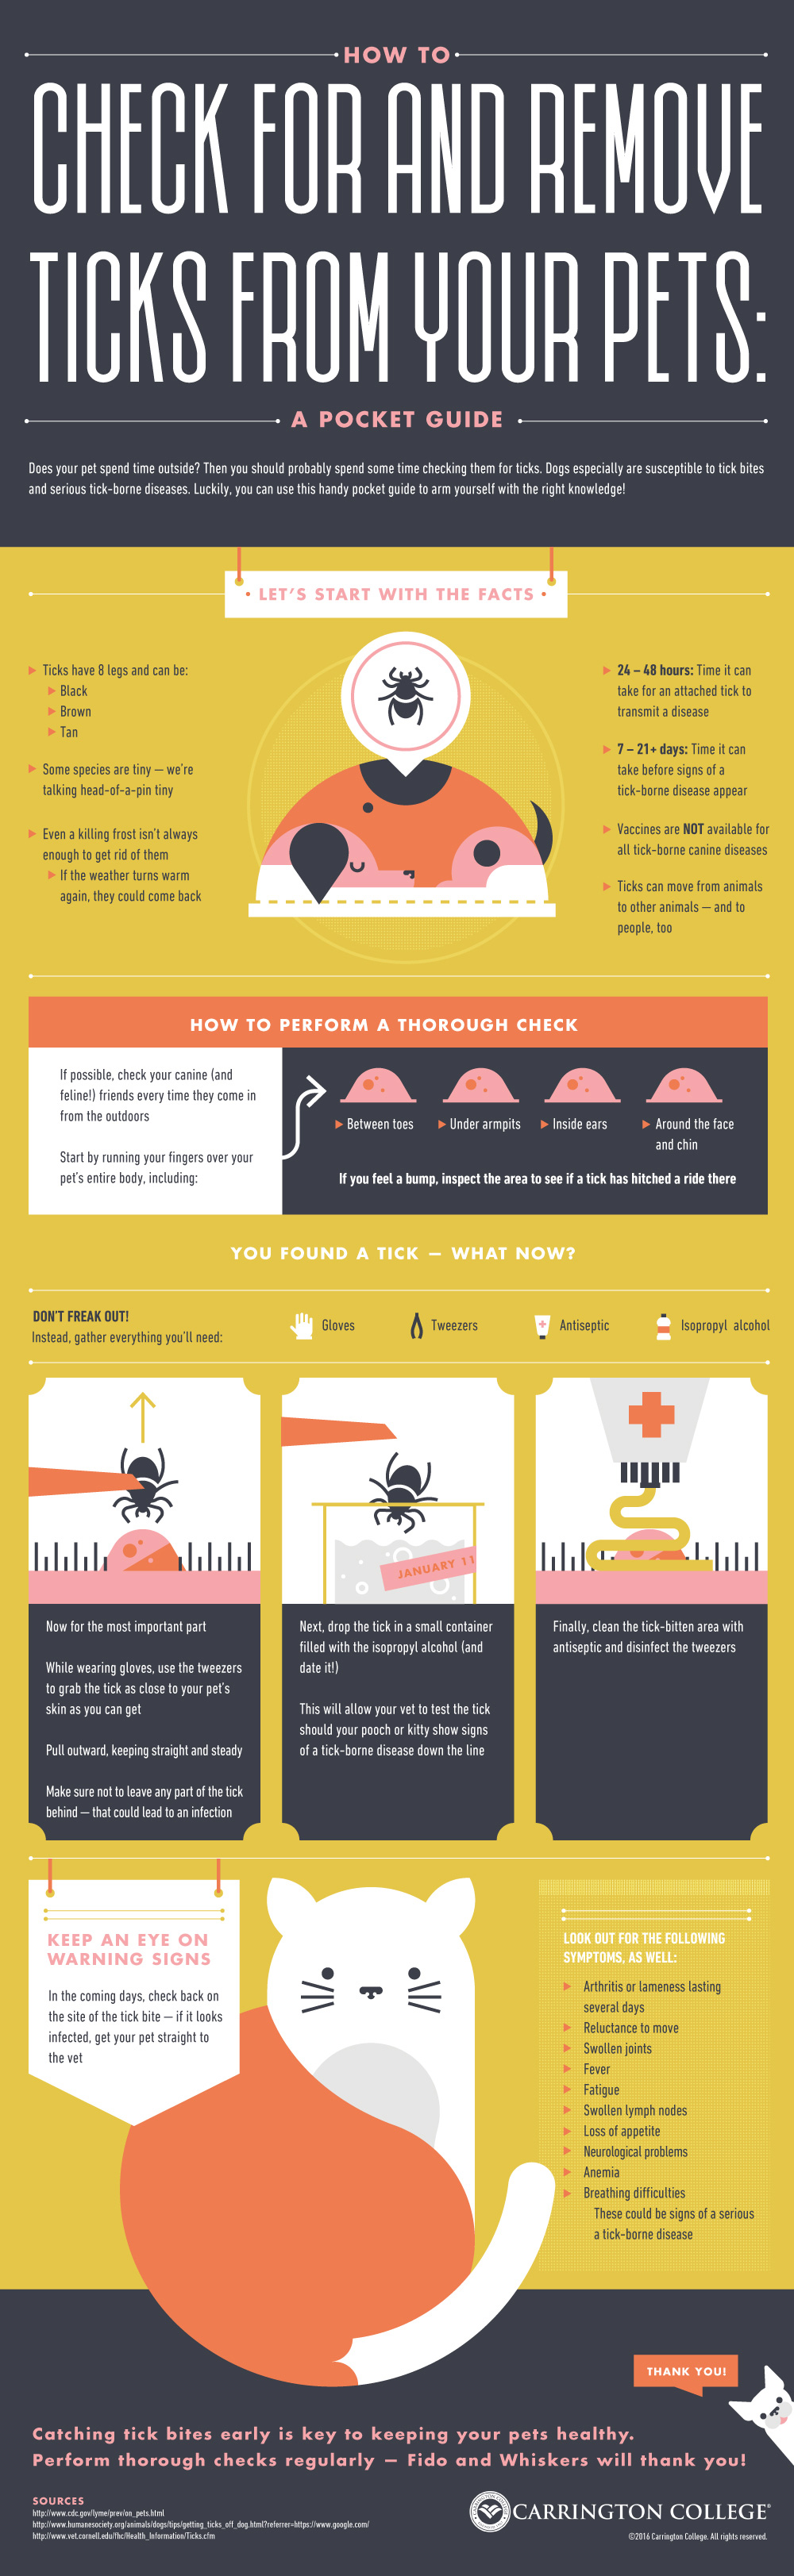 check-for-and-remove-ticks-from-your-pets-infographic